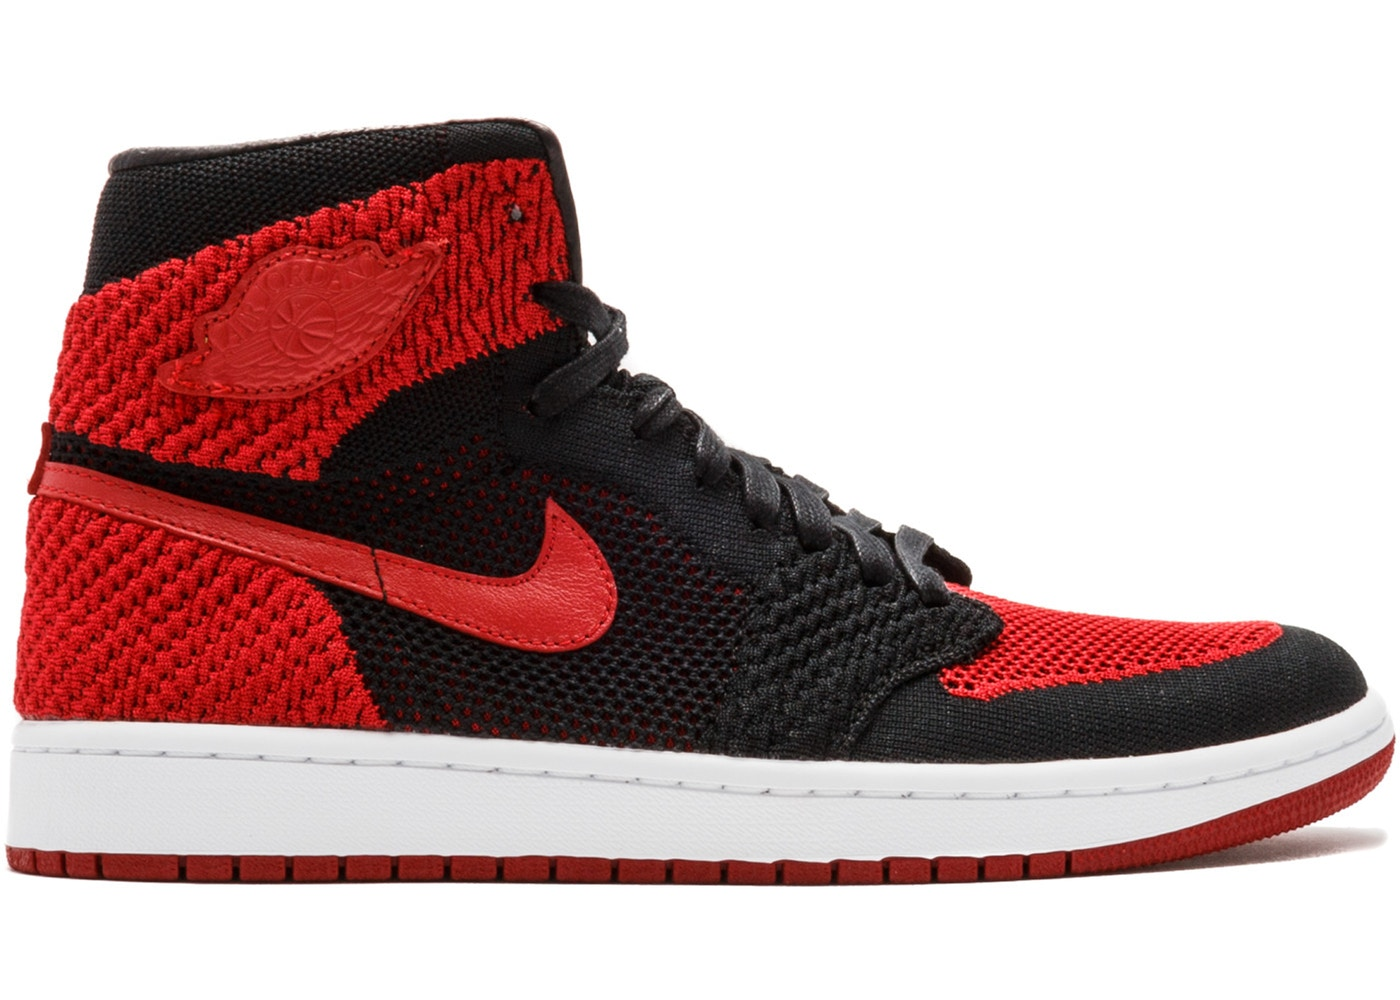 Has the latest Brand Jordan retro releases including, Air Jordan 1, Air Jordan V, Air Jordan XI and more. JavaScript seems to be disabled in your browser. Jordan retro for All Foot Locker Huge Selection for Women and Men Lot of exclusive Styles and Colors Free Shipping from 69/